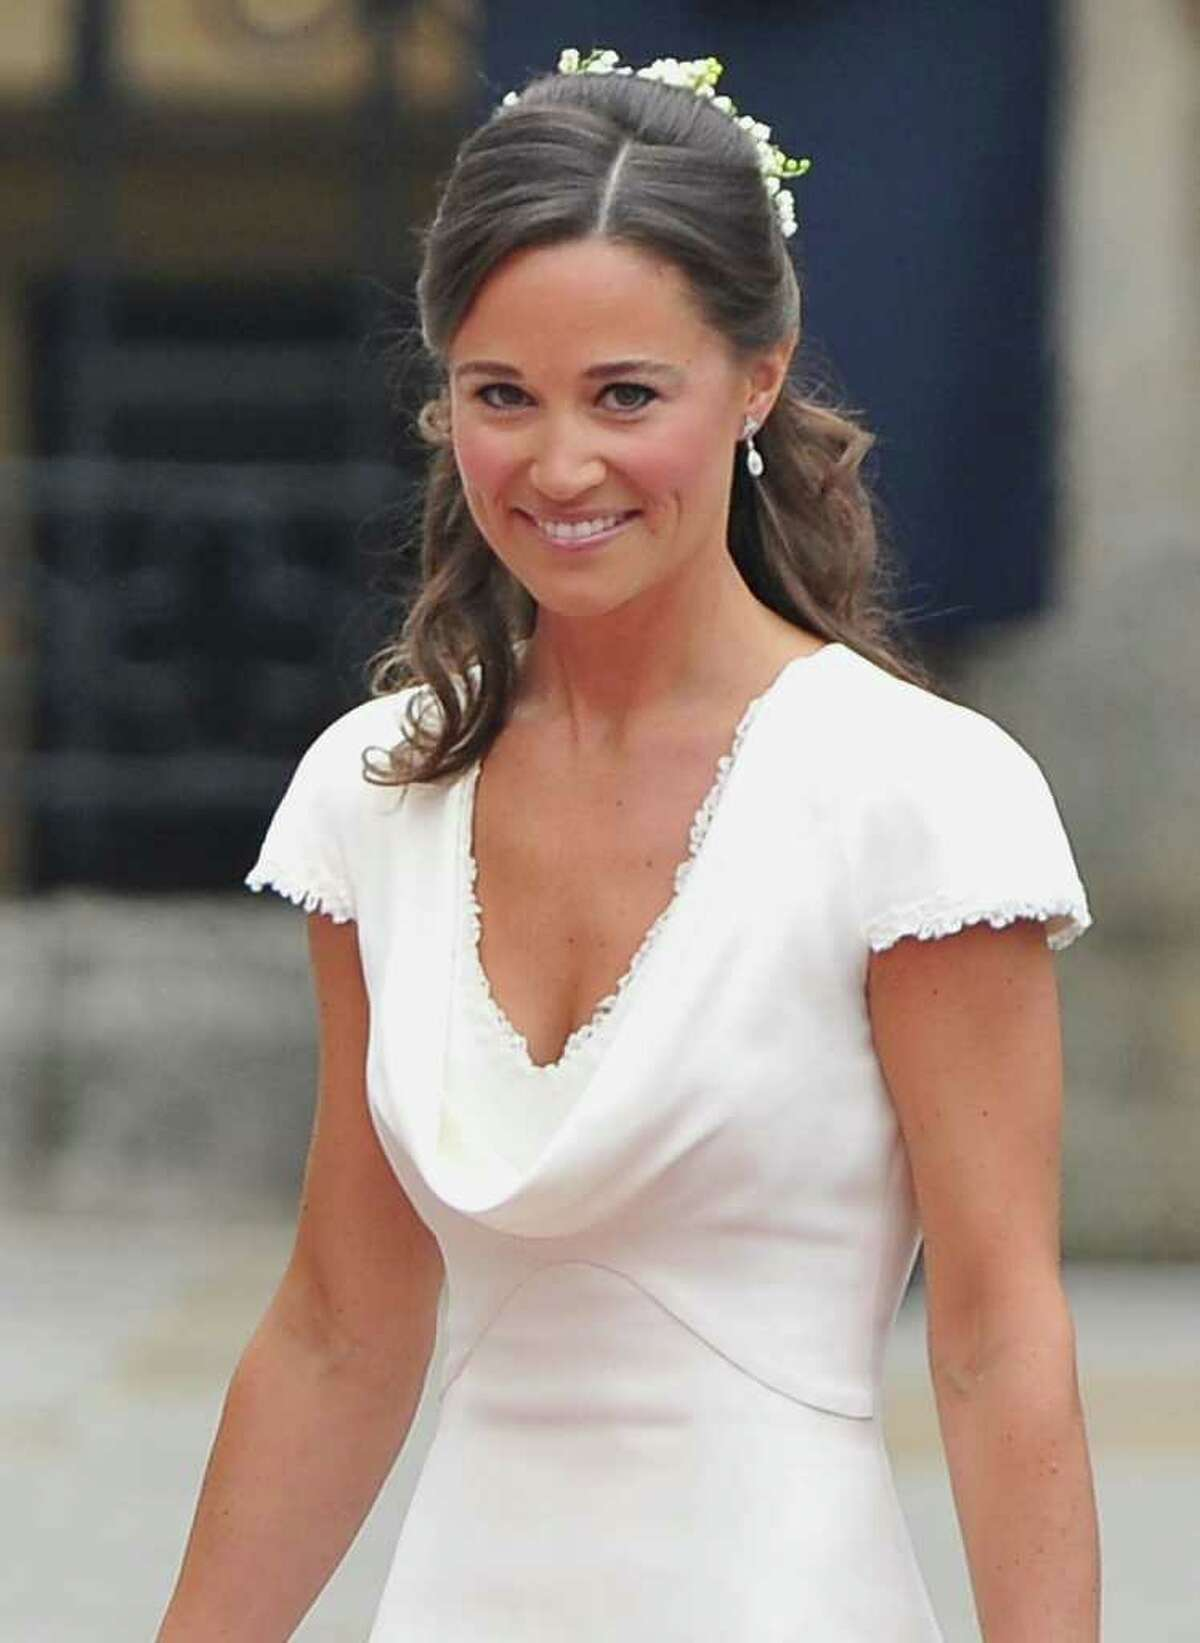 LONDON, ENGLAND - APRIL 29: Sister of the bride and Maid of Honour Pippa Middleton arrives to attend the Royal Wedding of Prince William to Catherine Middleton at Westminster Abbey on April 29, 2011 in London, England. The marriage of the second in line to the British throne is to be led by the Archbishop of Canterbury and will be attended by 1900 guests, including foreign Royal family members and heads of state. Thousands of well-wishers from around the world have also flocked to London to witness the spectacle and pageantry of the Royal Wedding. (Photo by Pascal Le Segretain/Getty Images) *** Local Caption *** Pippa Middleton;